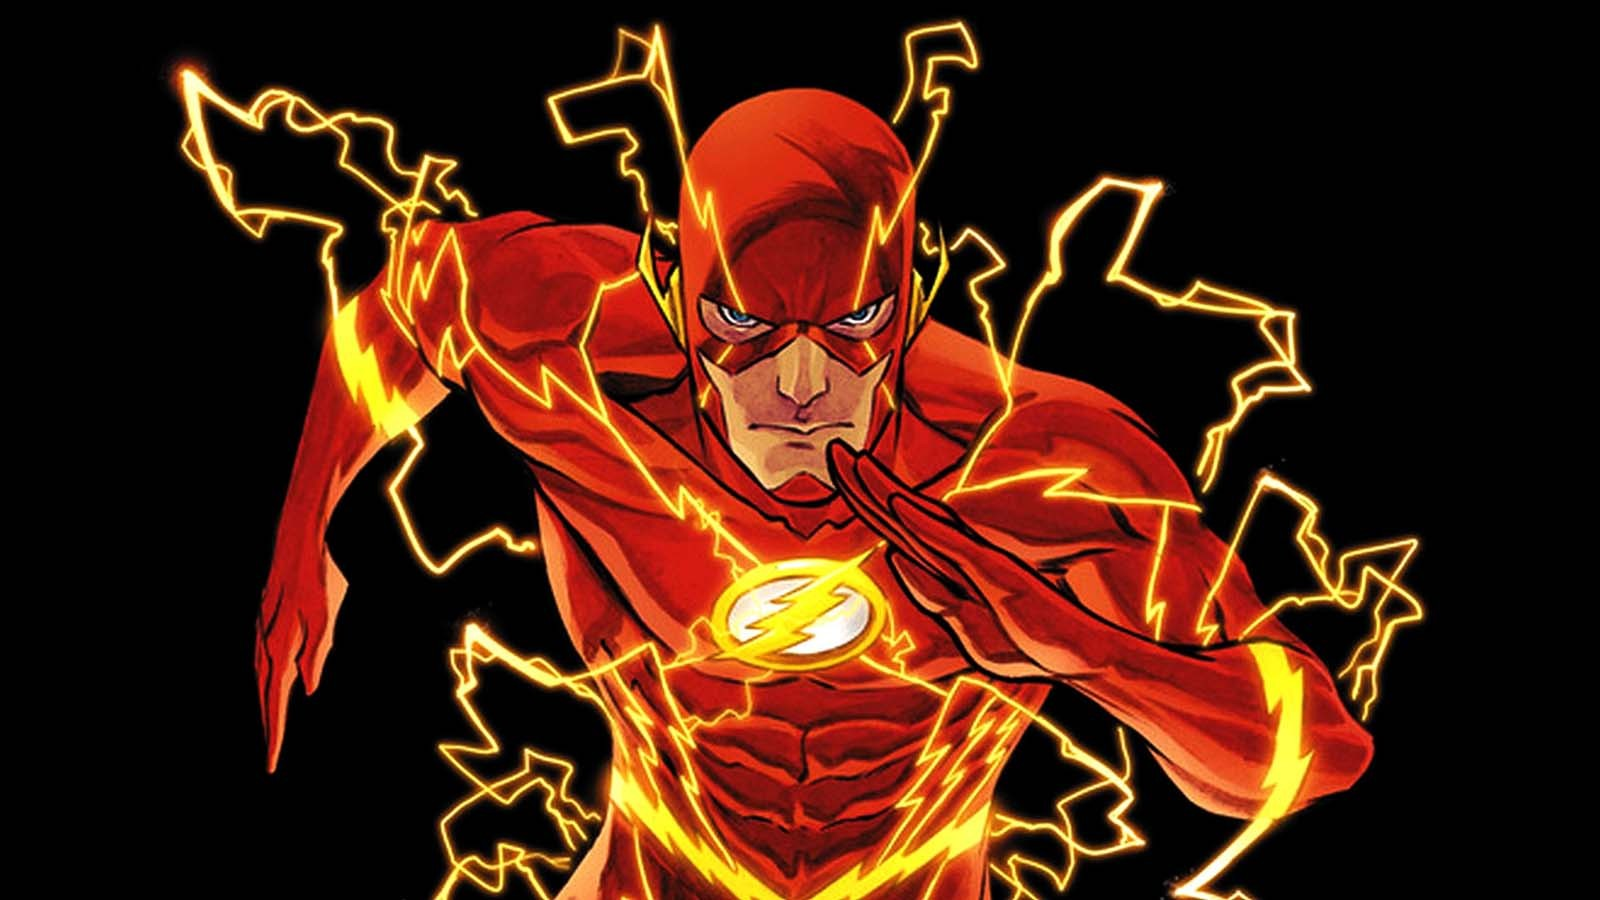 General 1600x900 The Flash fan art superhero artwork